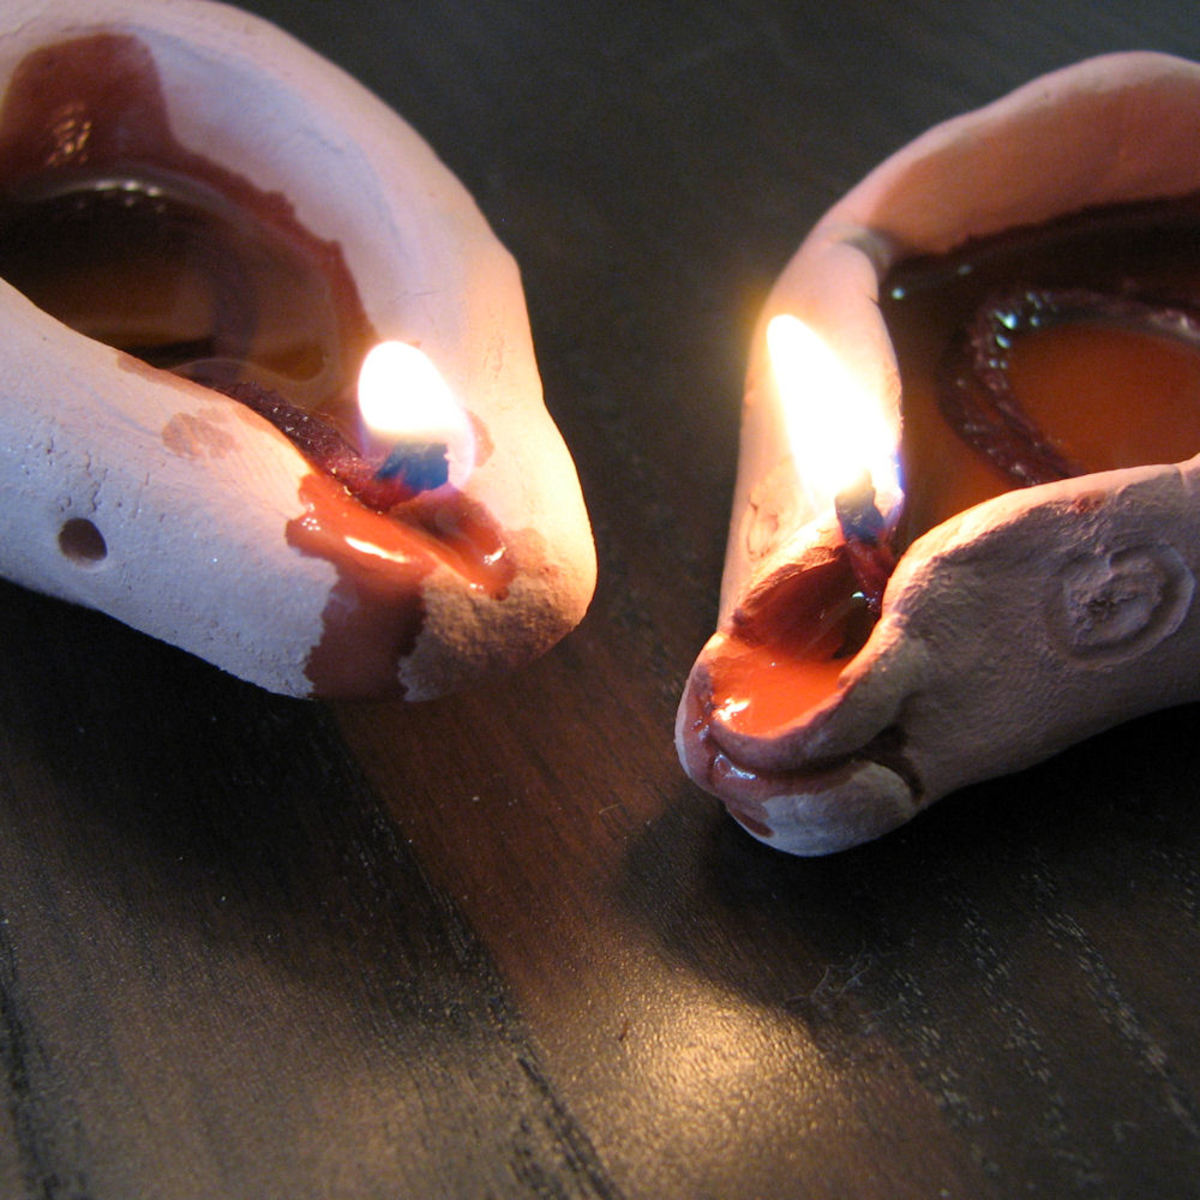 diy-how-to-make-a-clay-oil-lamp